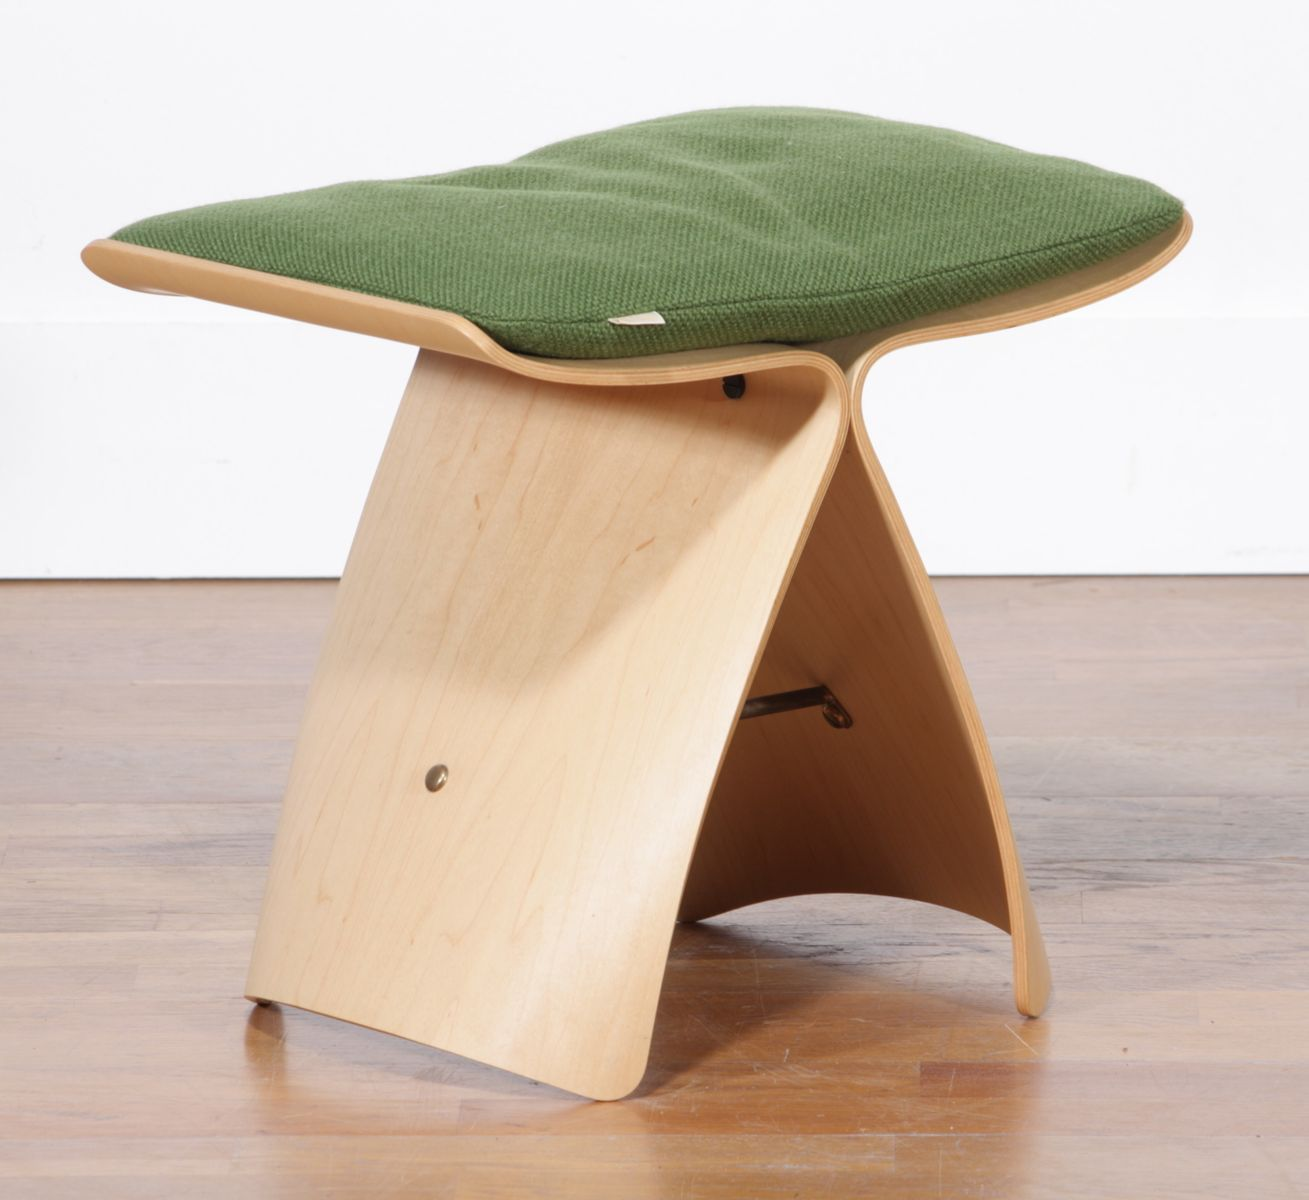 Butterfly chair sori yanagi - Maple Butterfly Stool By Sori Yanagi For Tendo Mokko Japan 1980s For Sale At Pamono